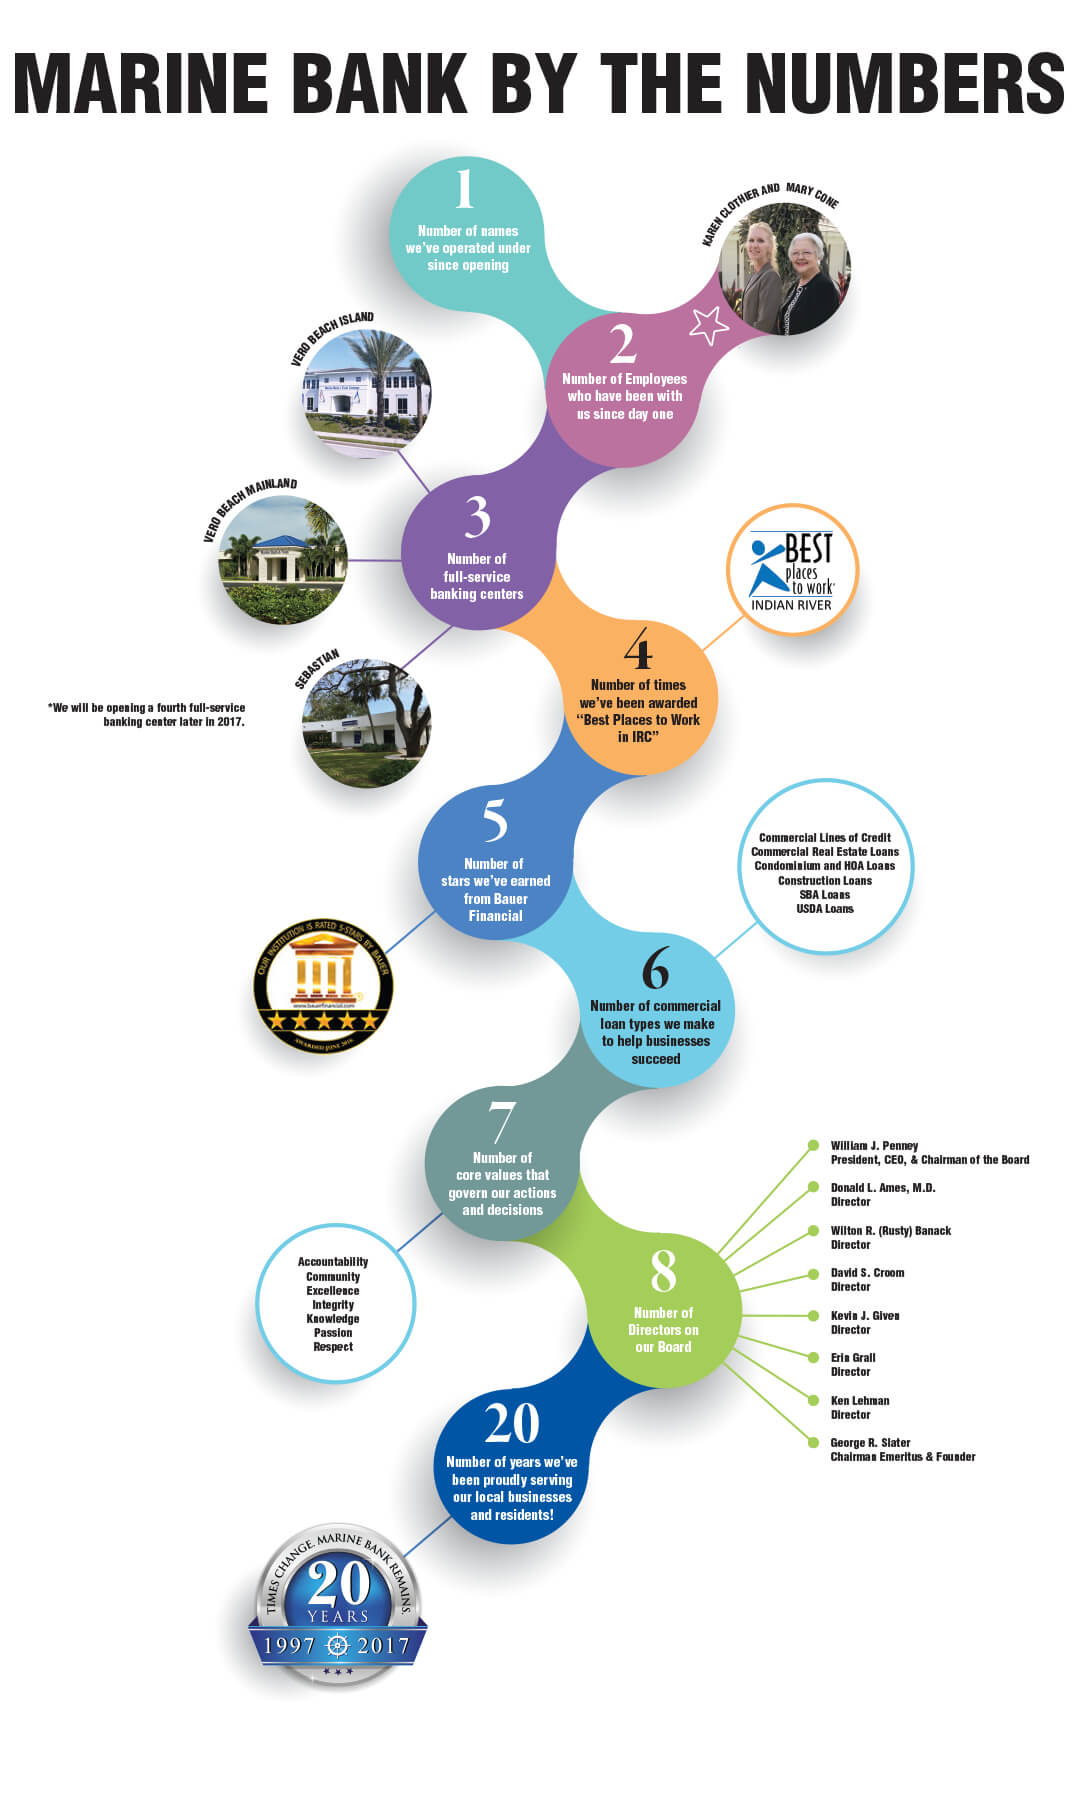 Infographic that features a variety of events that have occurred over the past 20 years